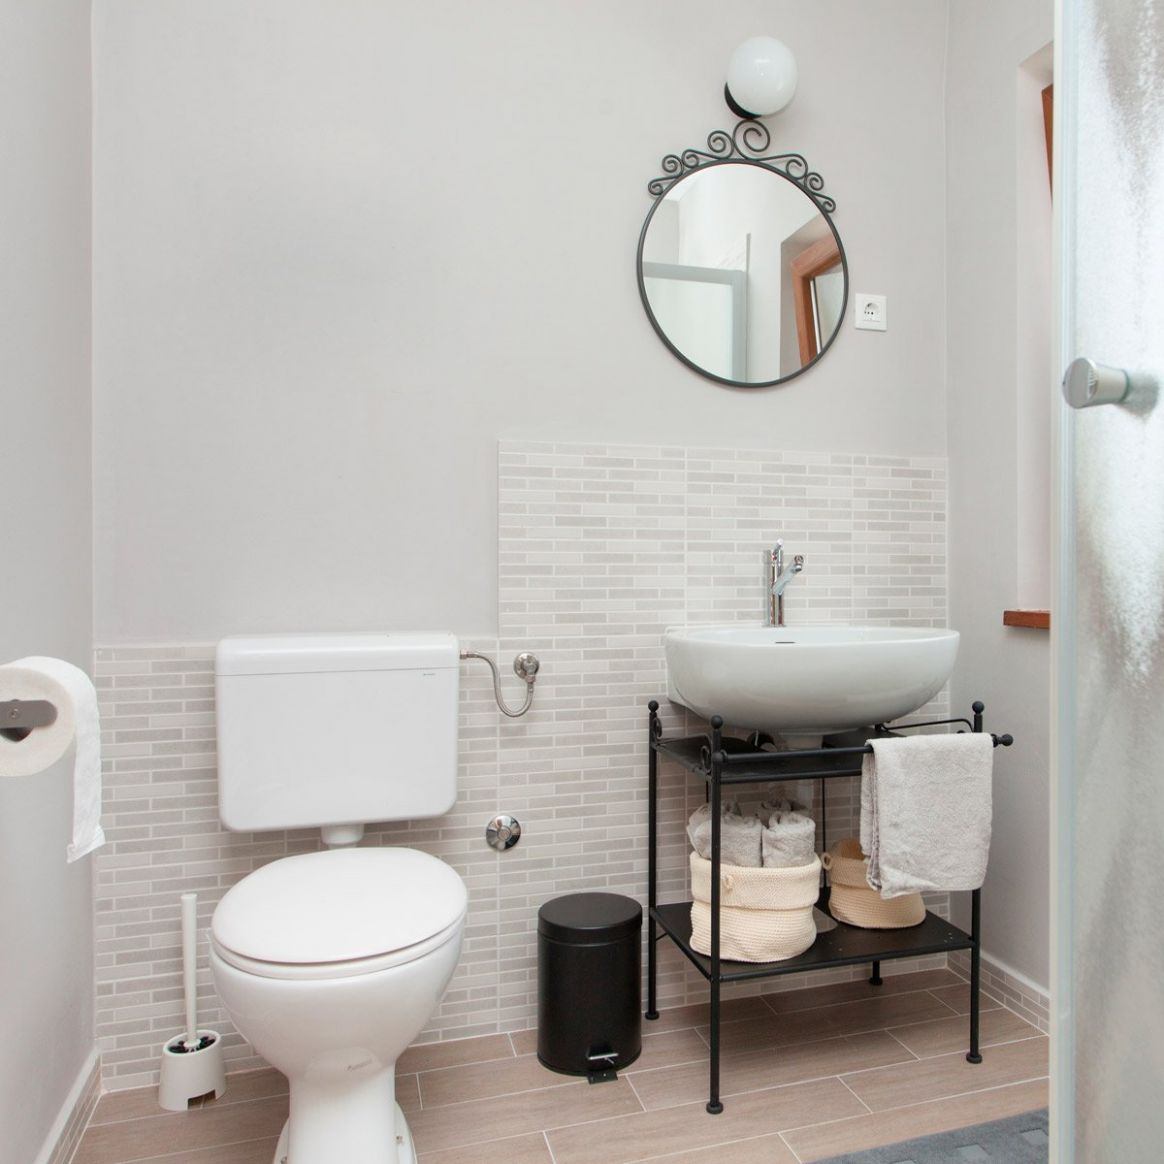 9 Small Bathroom Ideas That Make a Big Impact | Family Handyman - bathroom ideas small